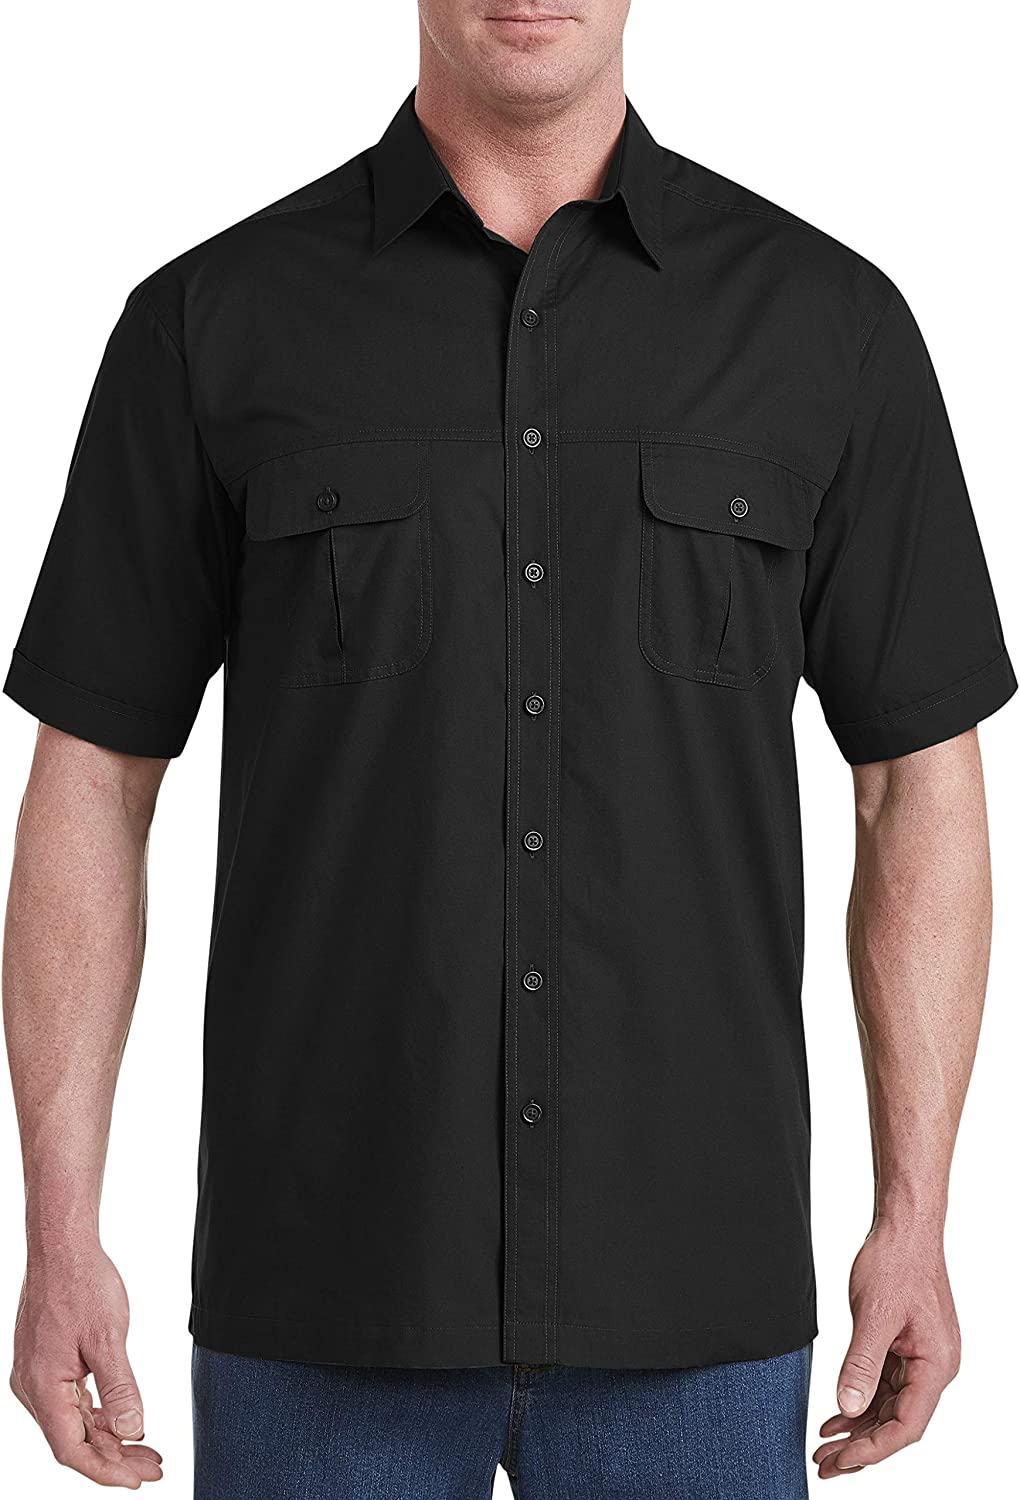 Harbor Bay by DXL Big and Tall Short-Sleeve Co-Pilot Sport Shirt